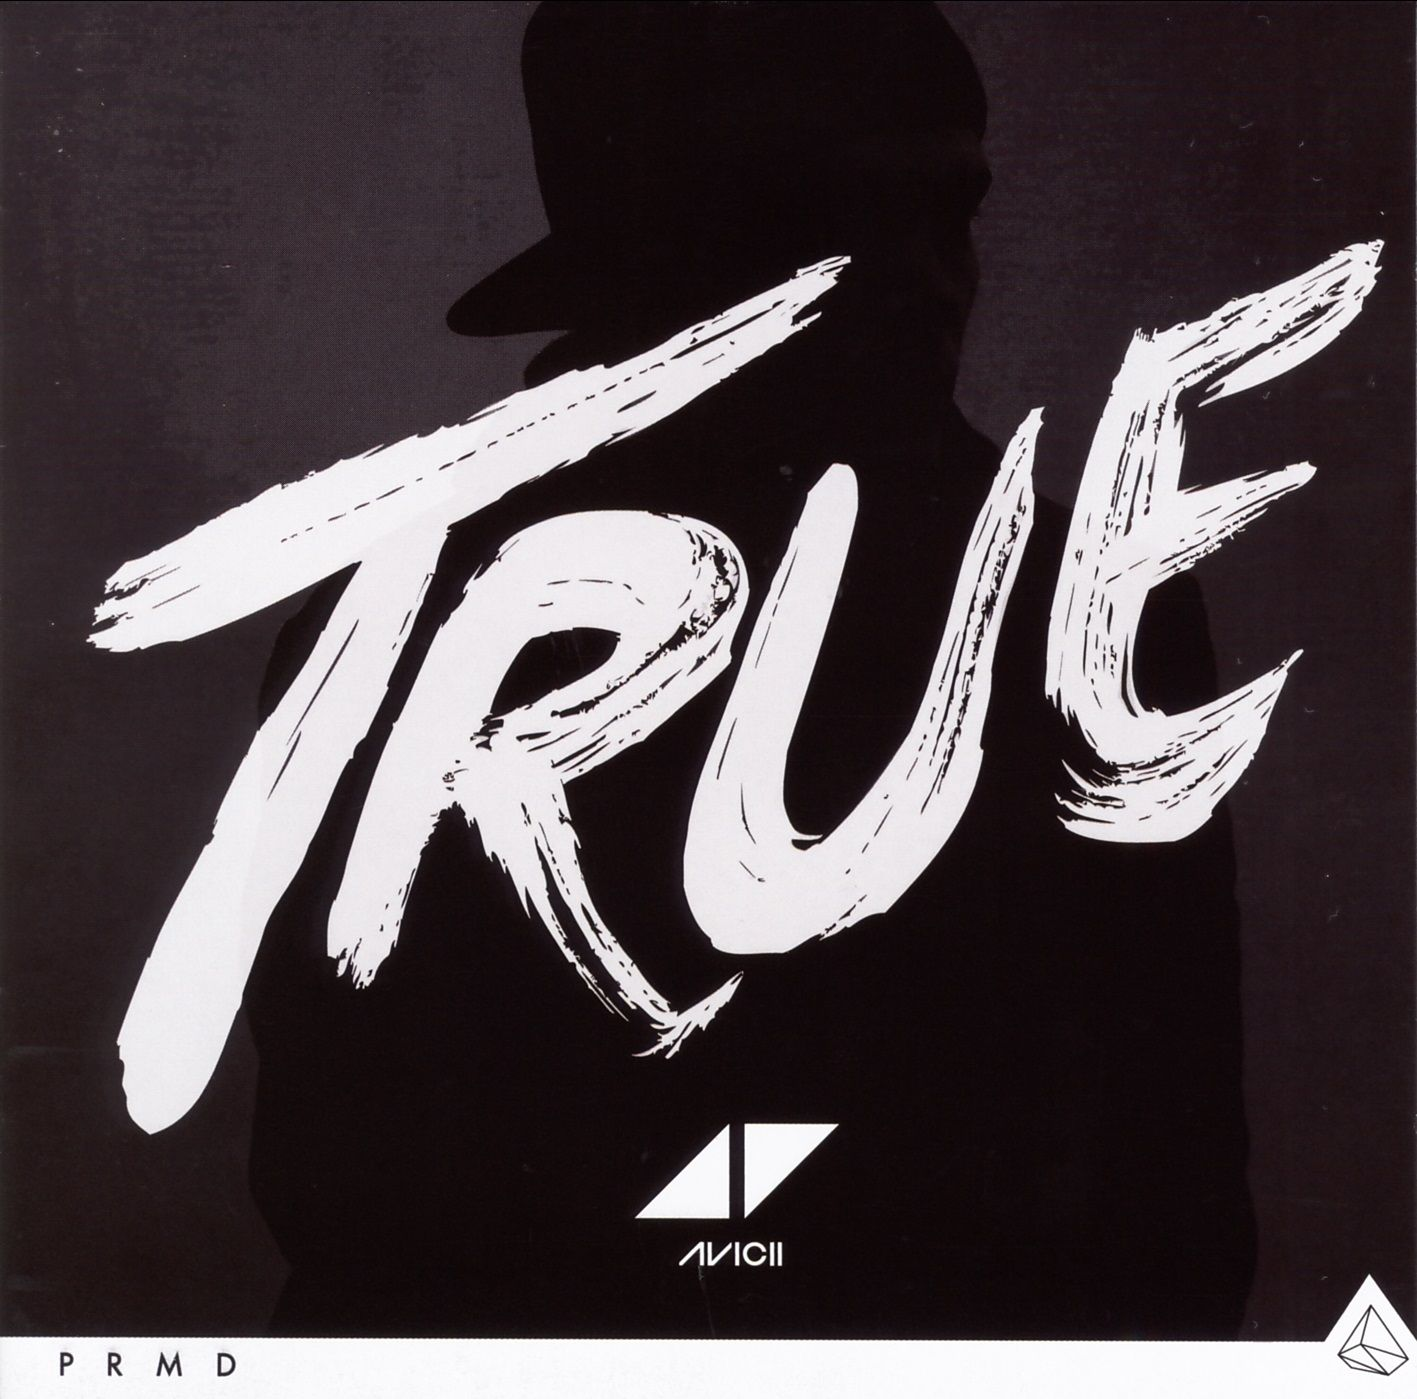 Avicii - True album cover